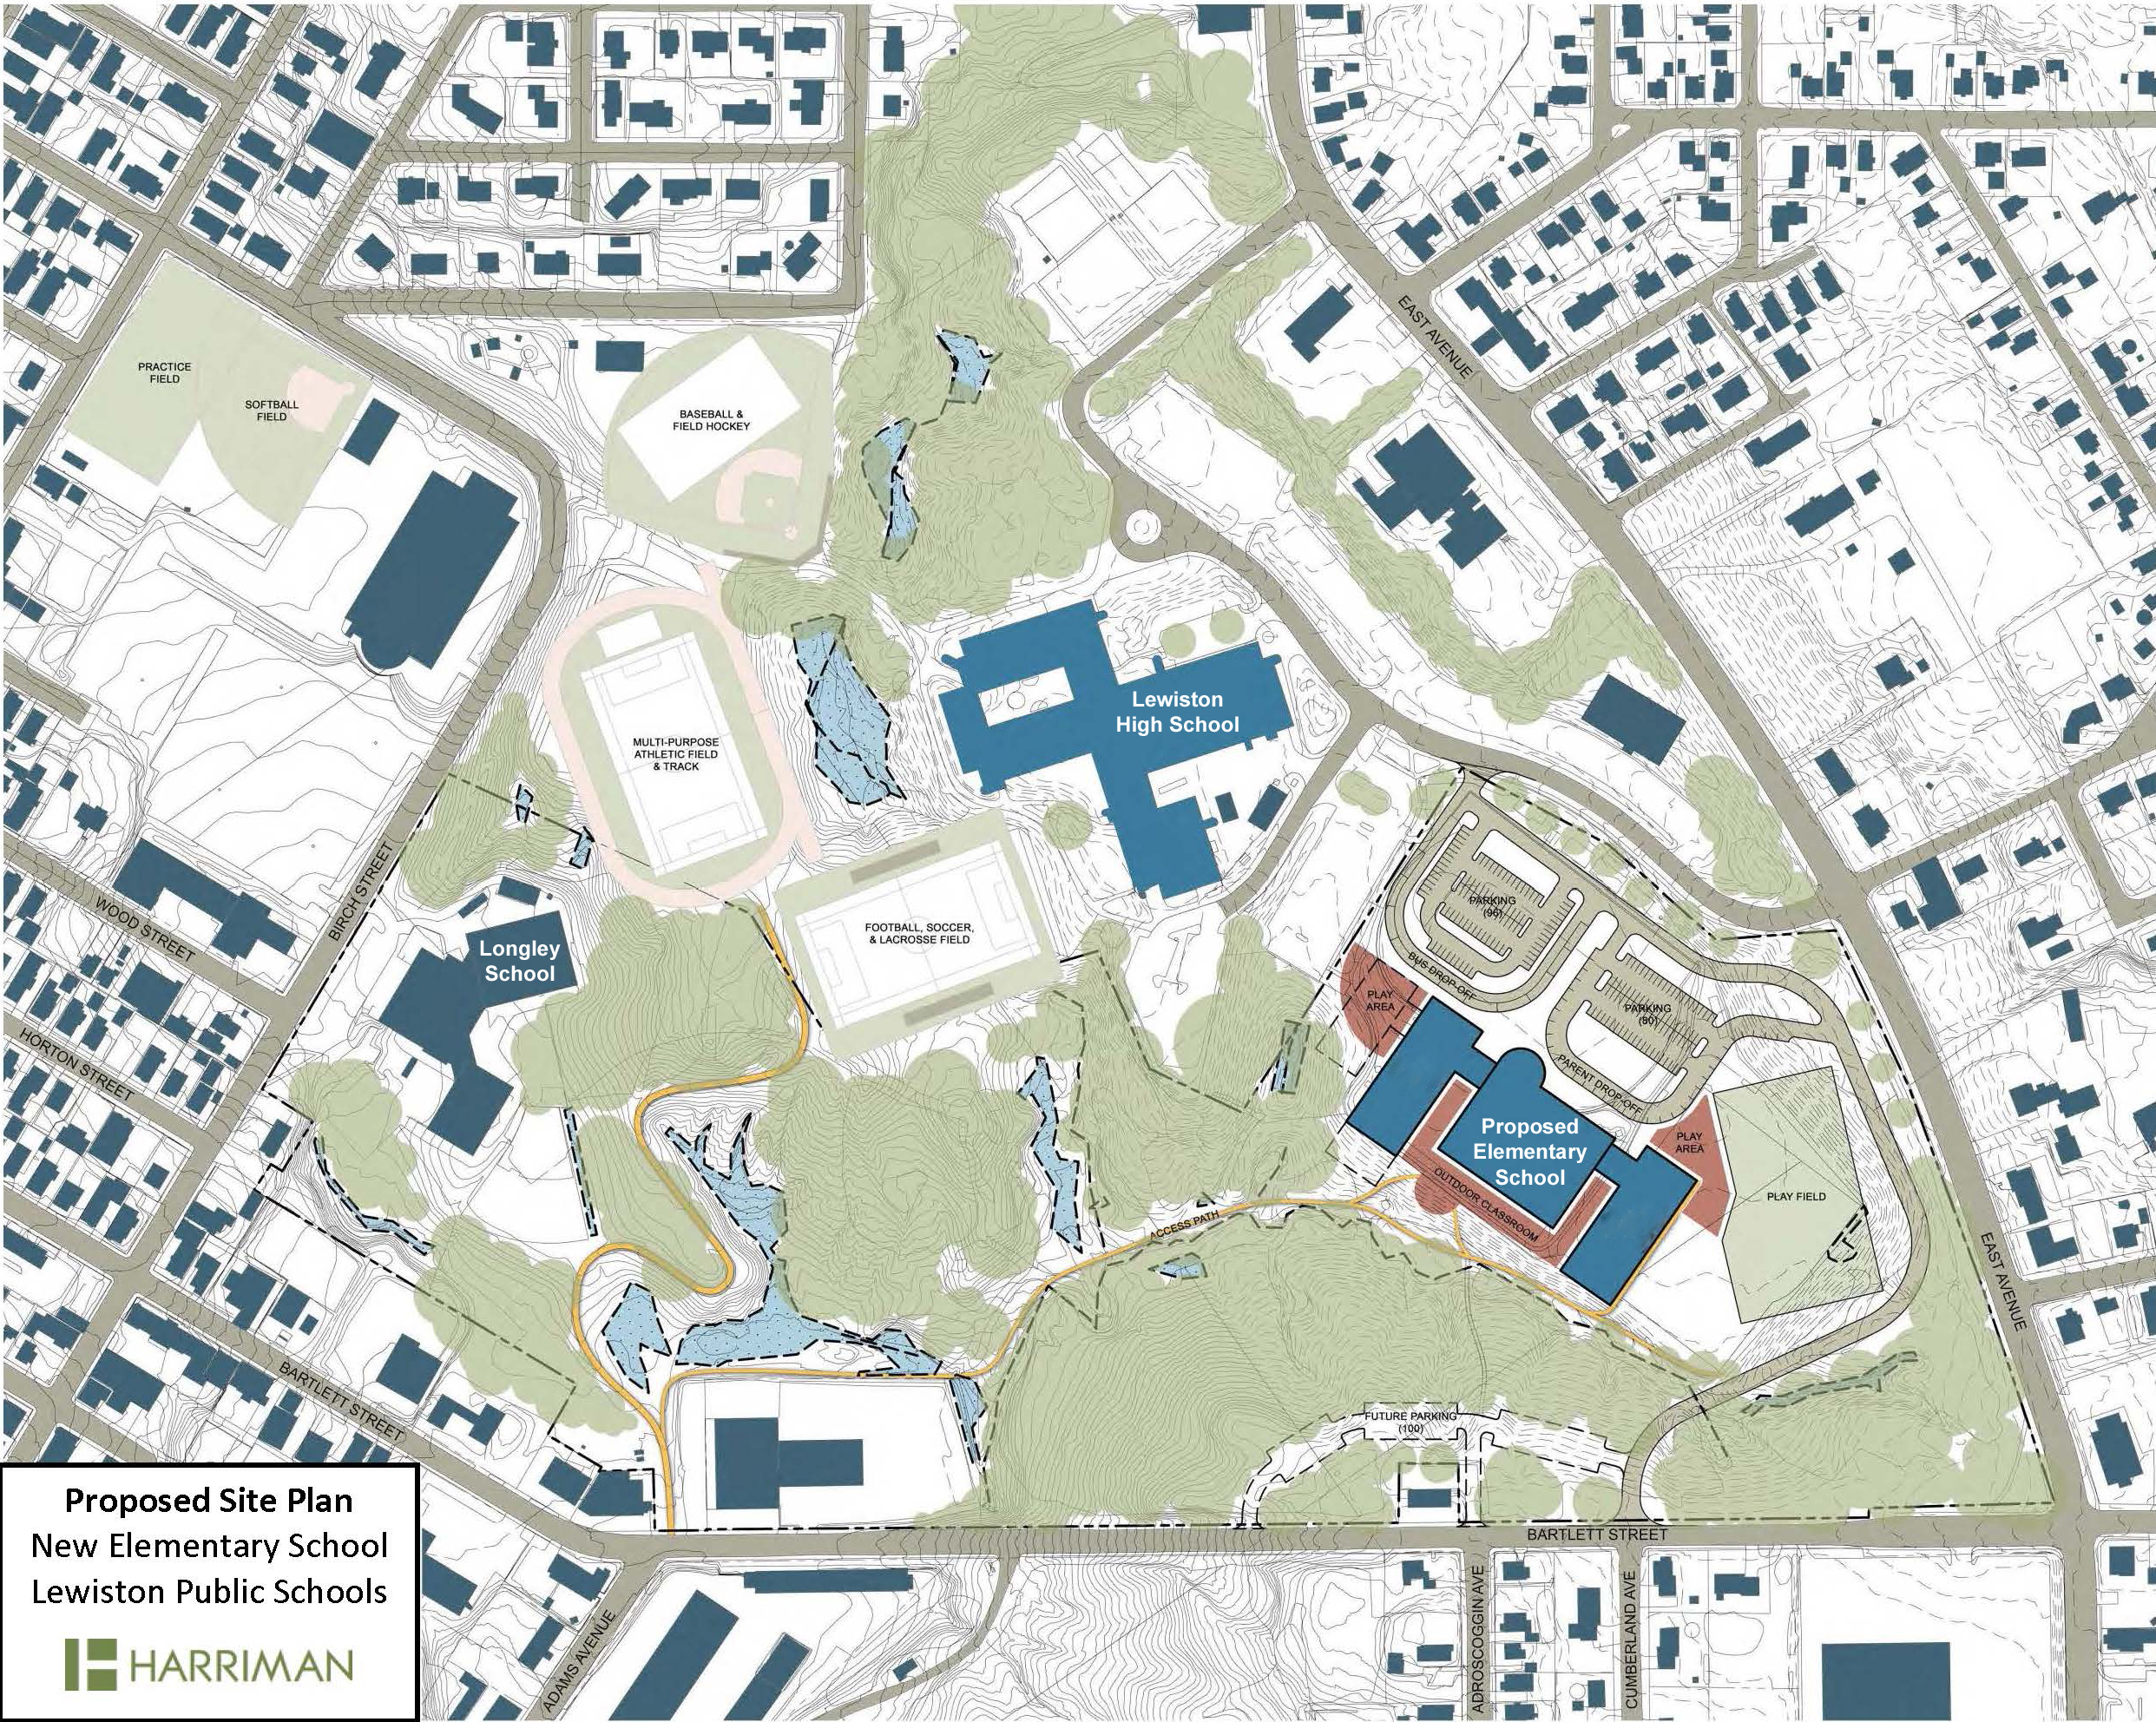 Proposed Site Plan for New School